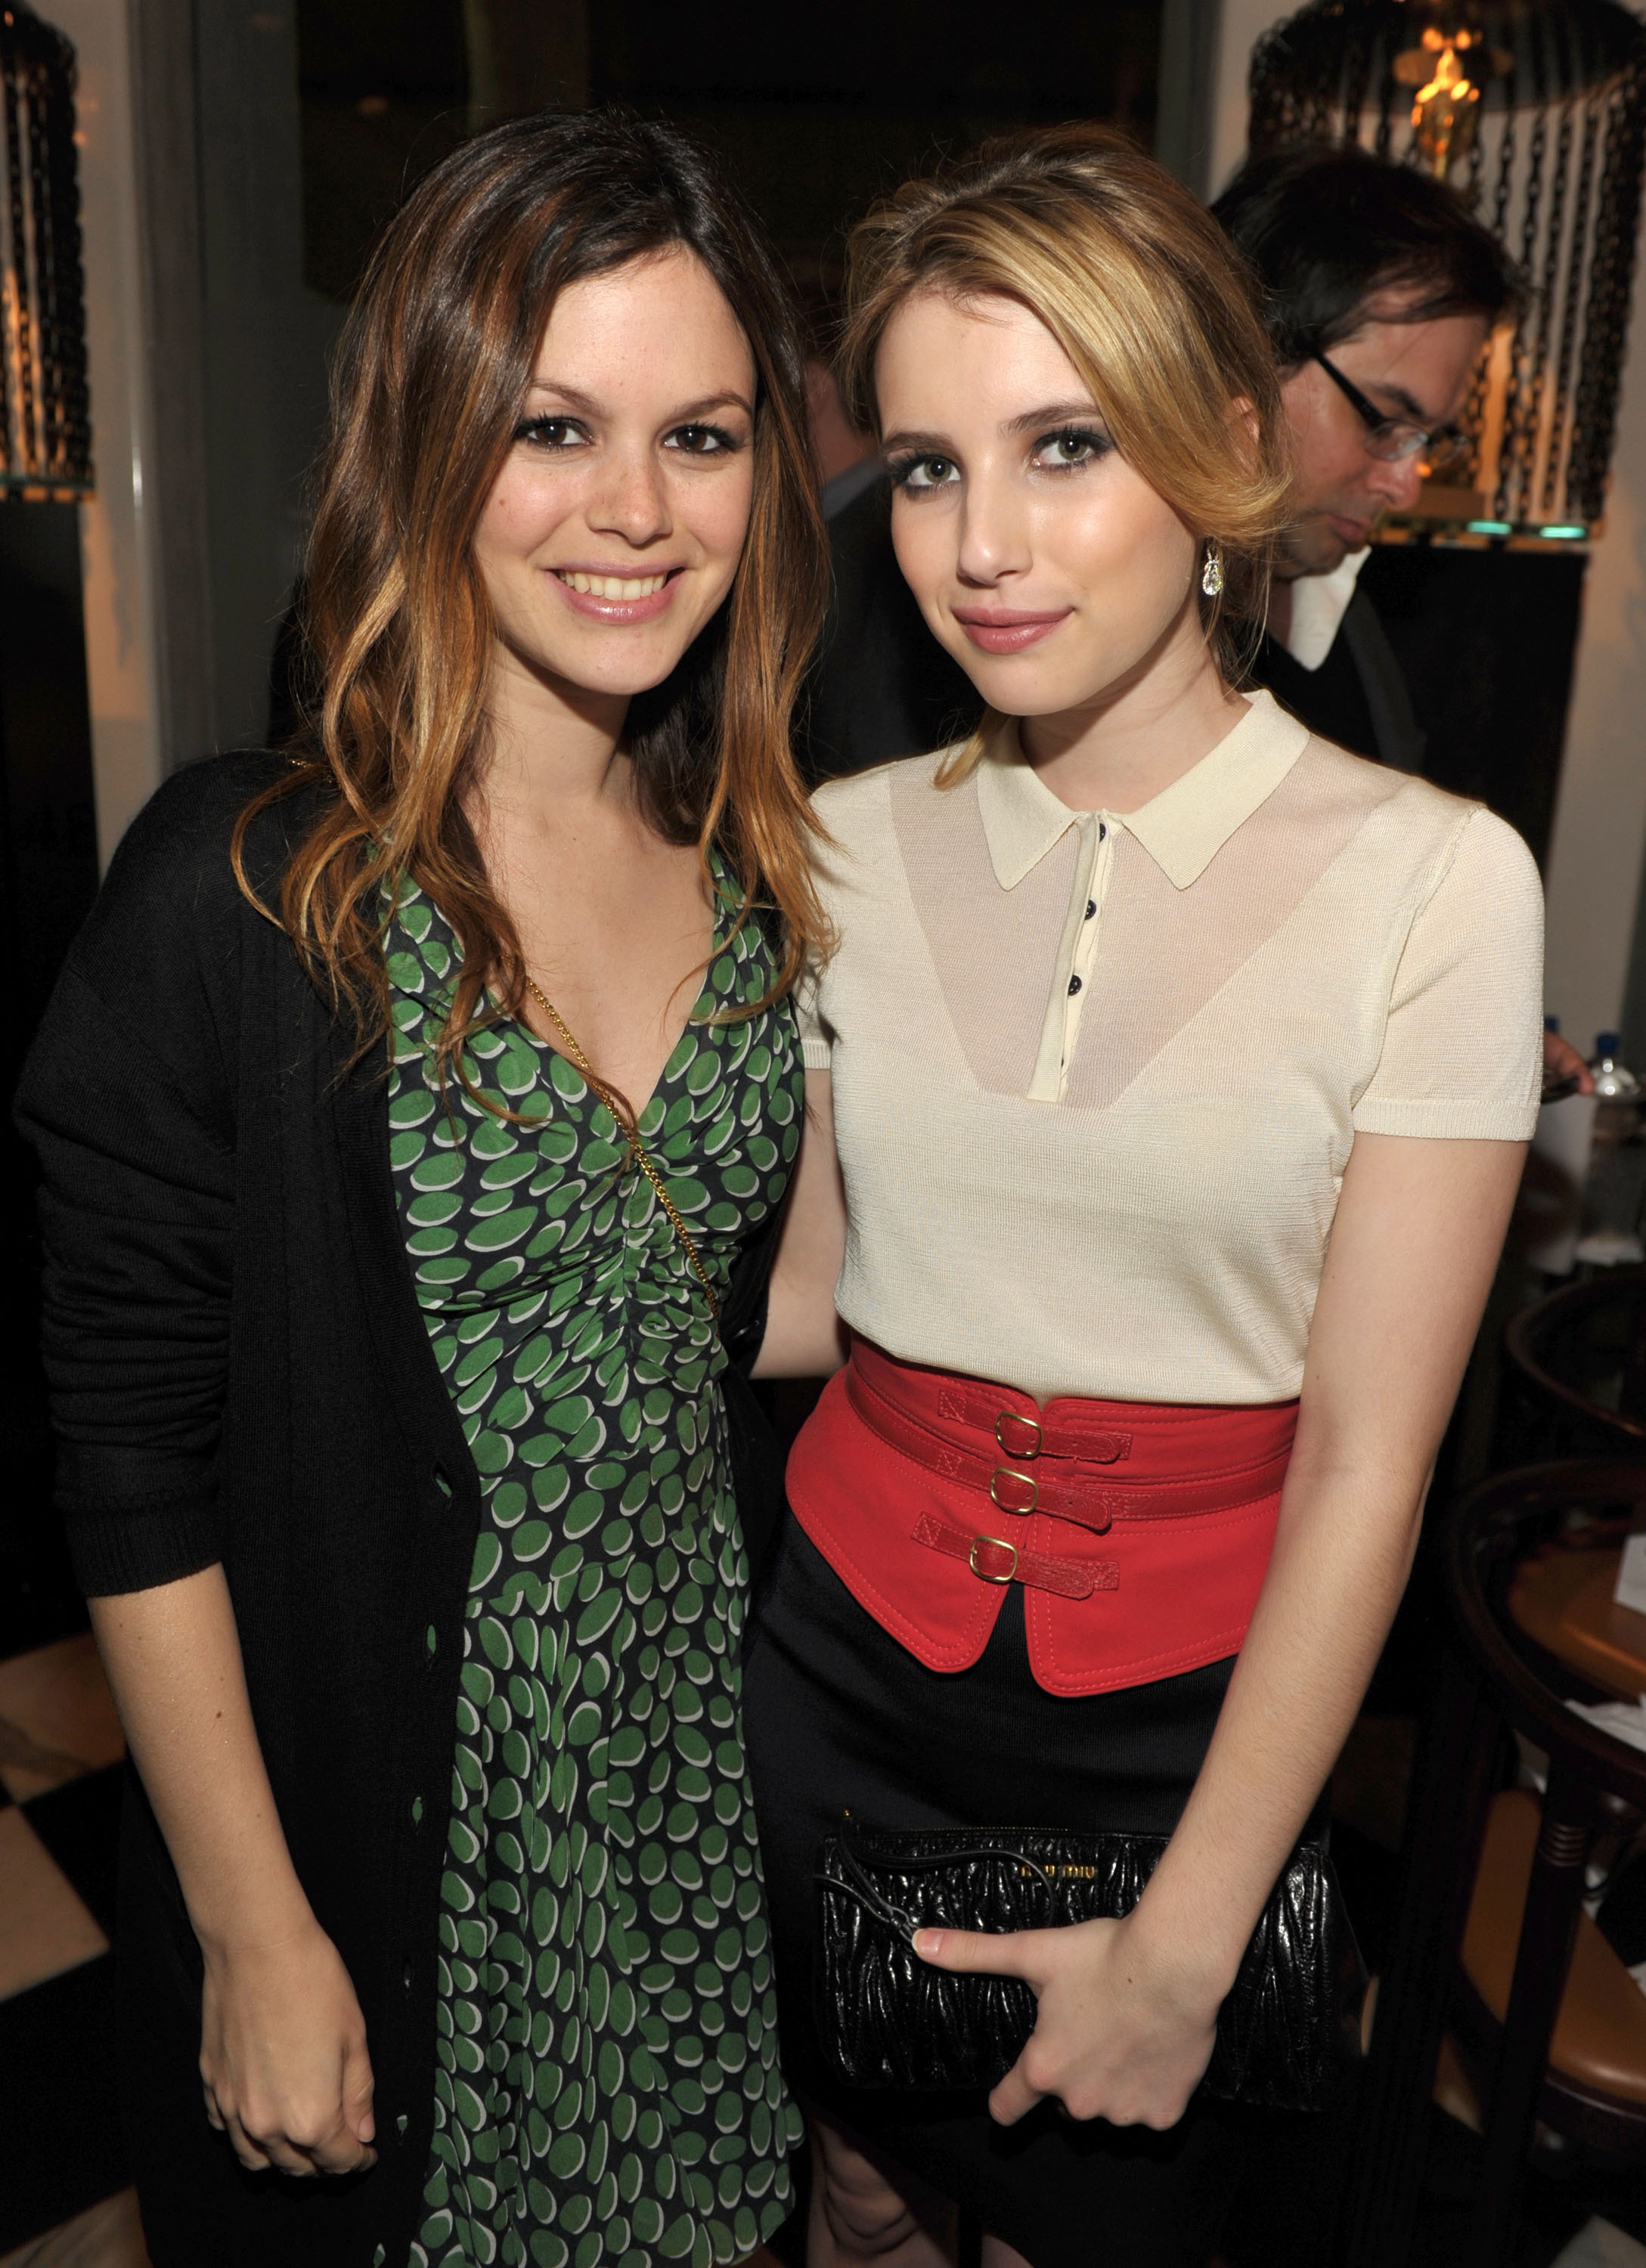 Rachel Bilson and Emma Roberts at the launch of Z SPOKE by Zac Posen hosted by Saks Fifth Avenue at Mr Chow in Beverly Hills on Feb. 27, 2010